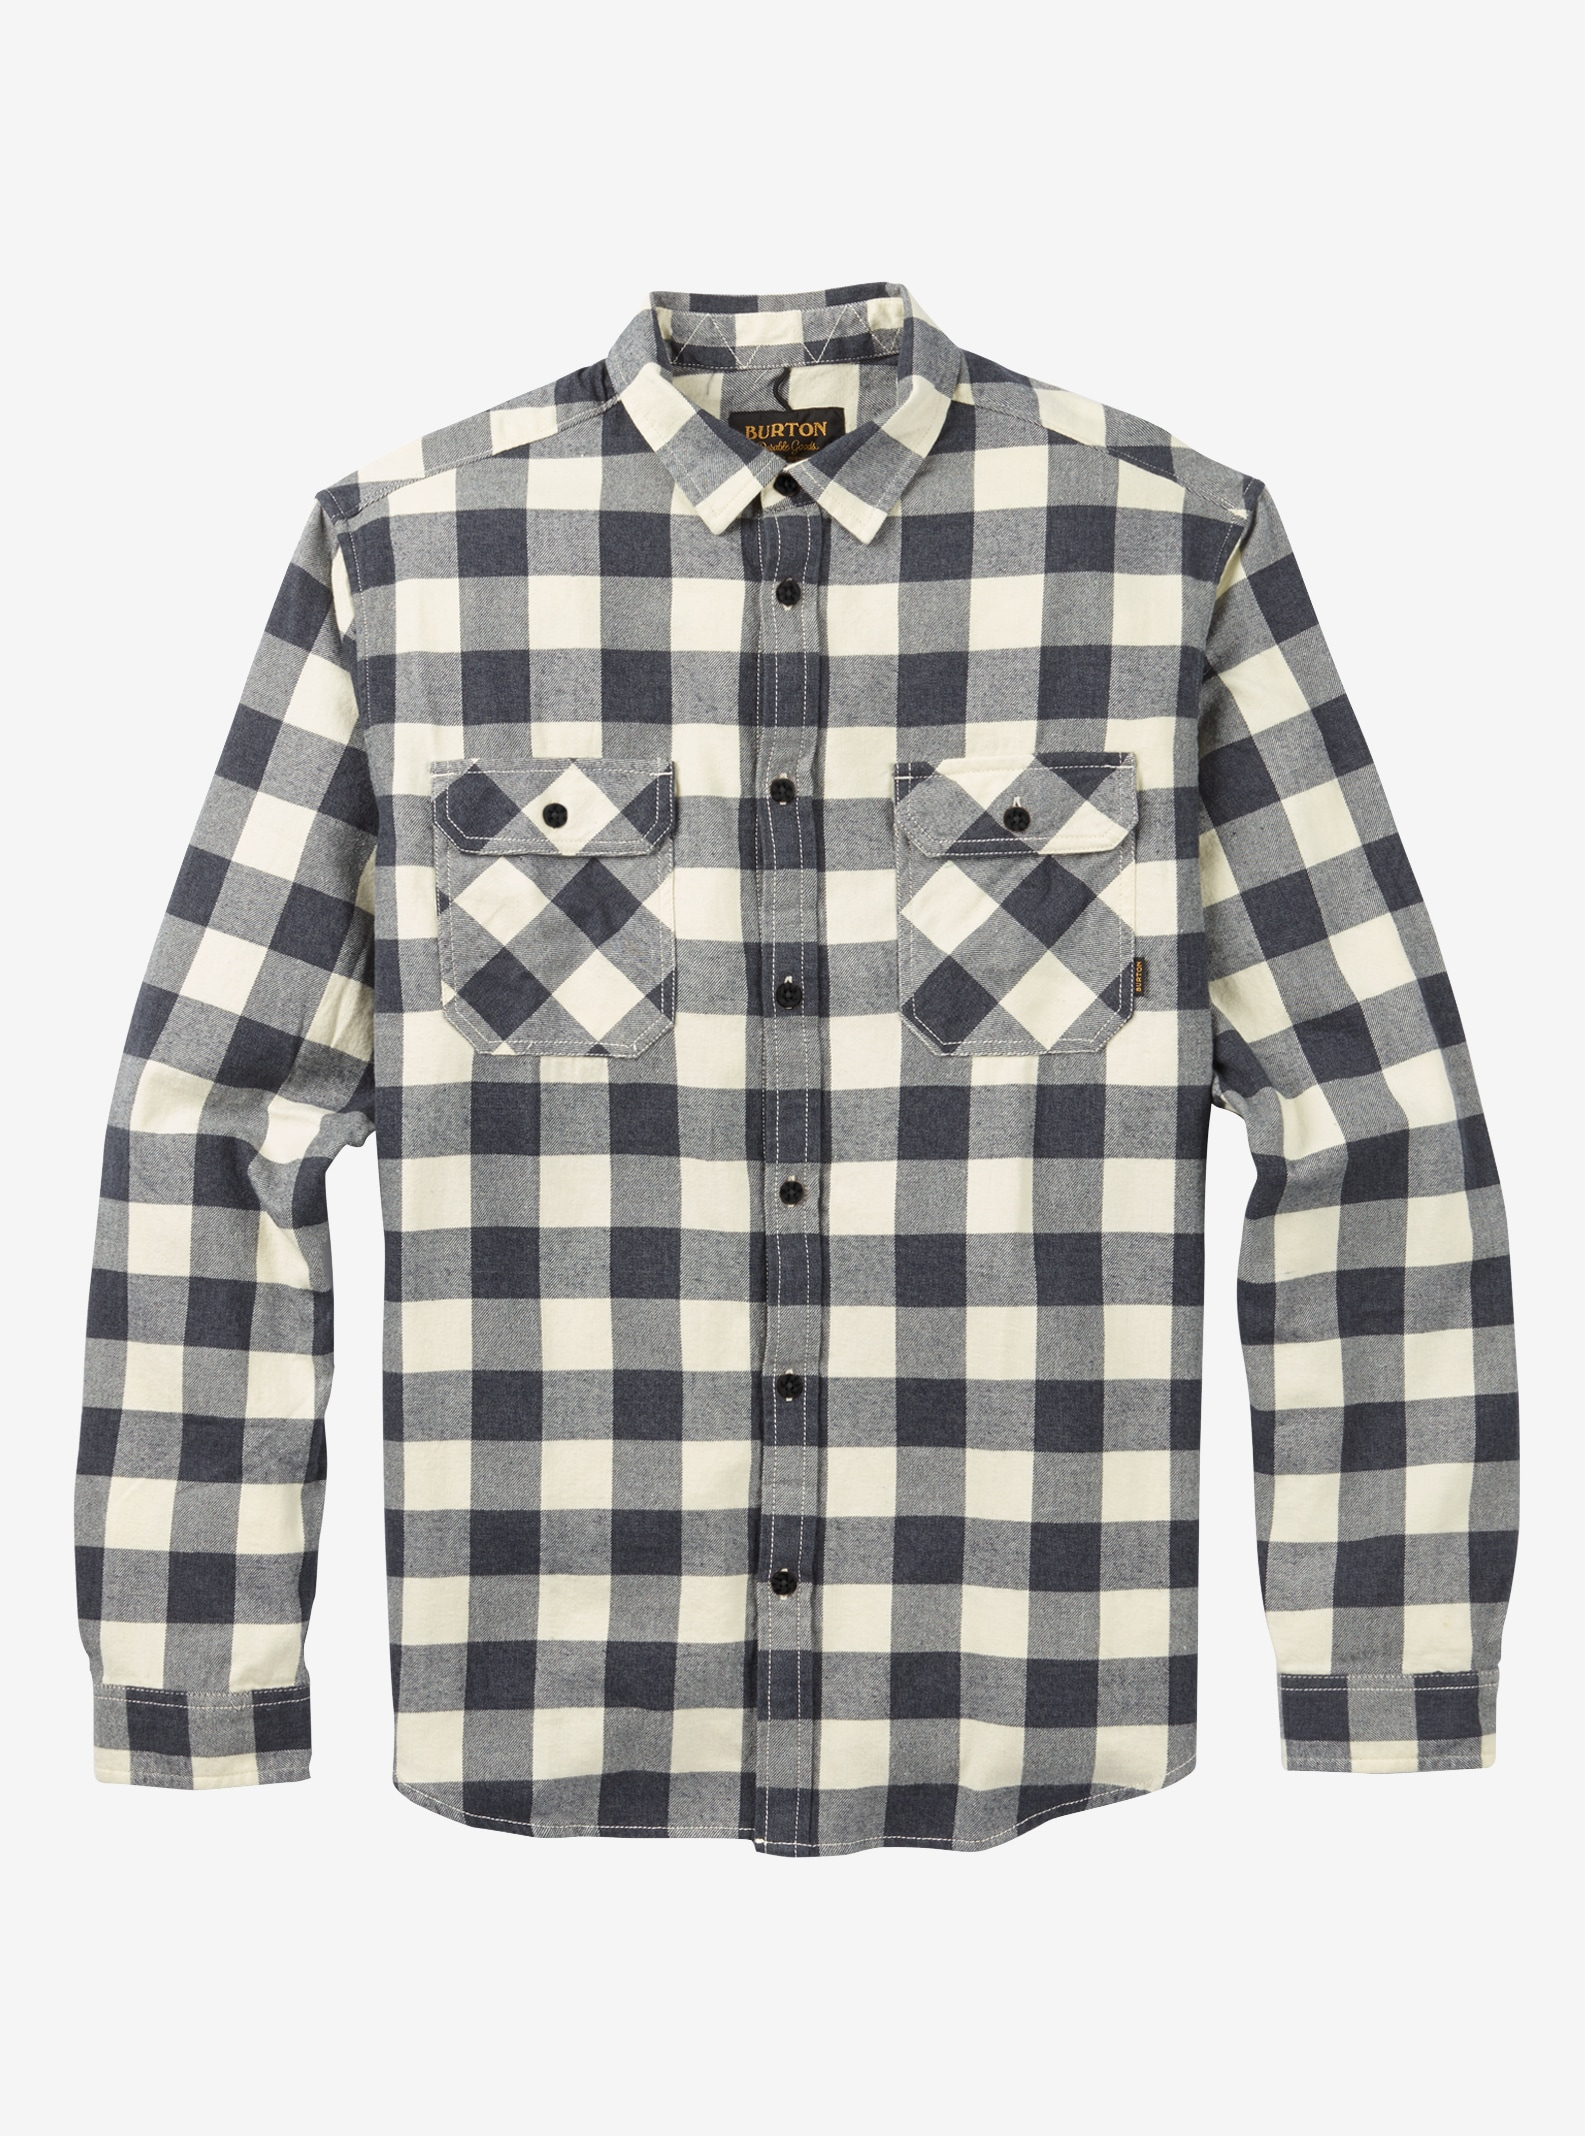 Men's Burton Brighton Flannel shown in Canvas Heather Buffalo